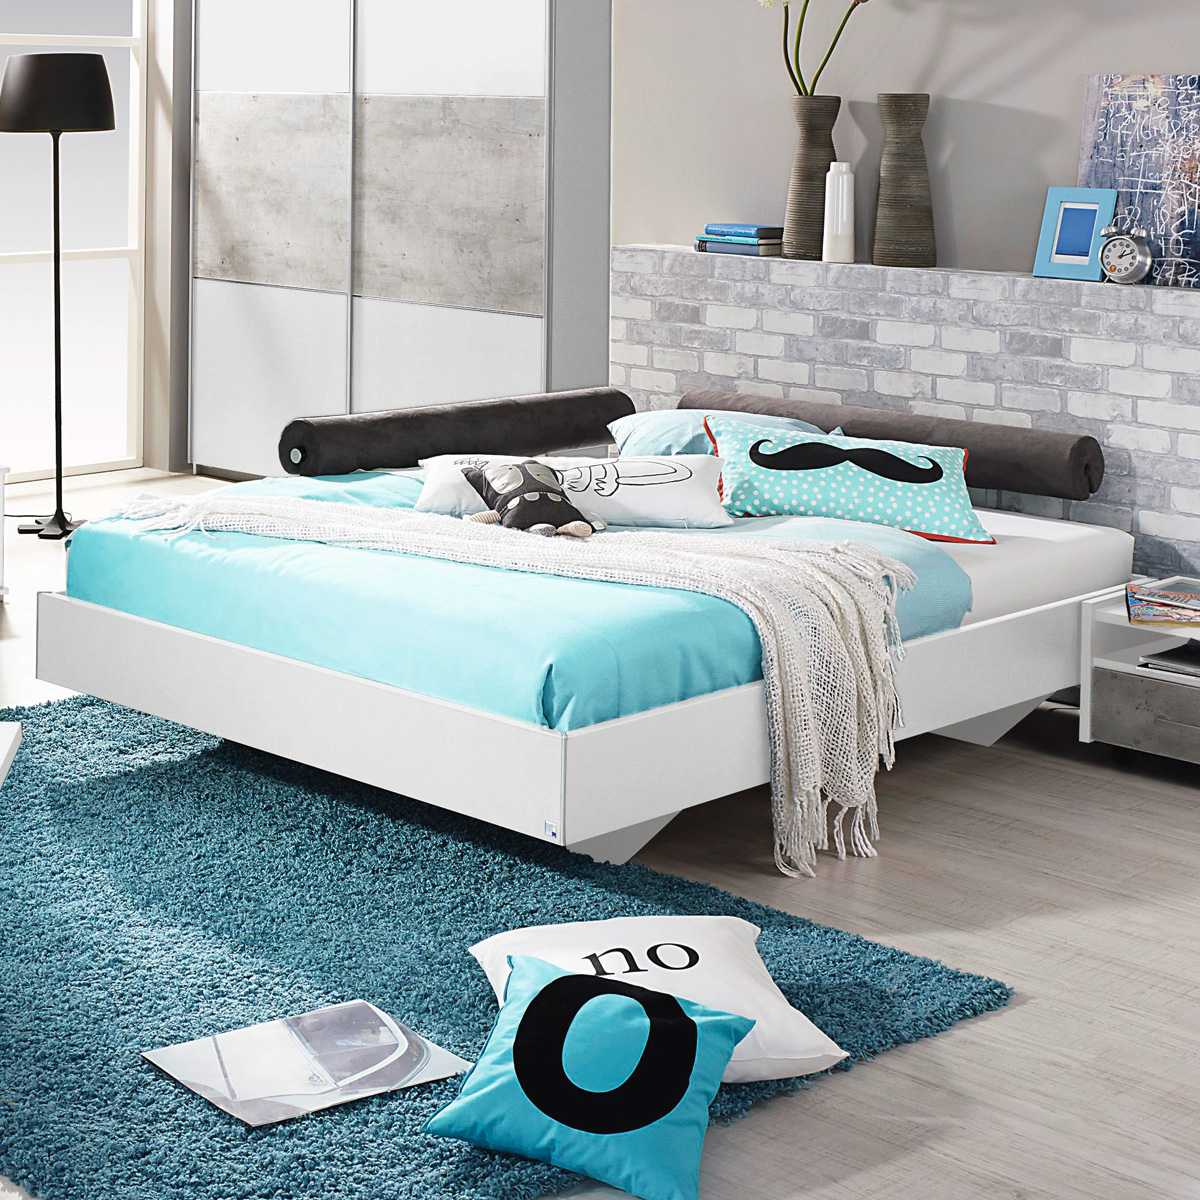 bett milo futonbett bettgestell liege f r jugendzimmer in wei 120x200 ebay. Black Bedroom Furniture Sets. Home Design Ideas